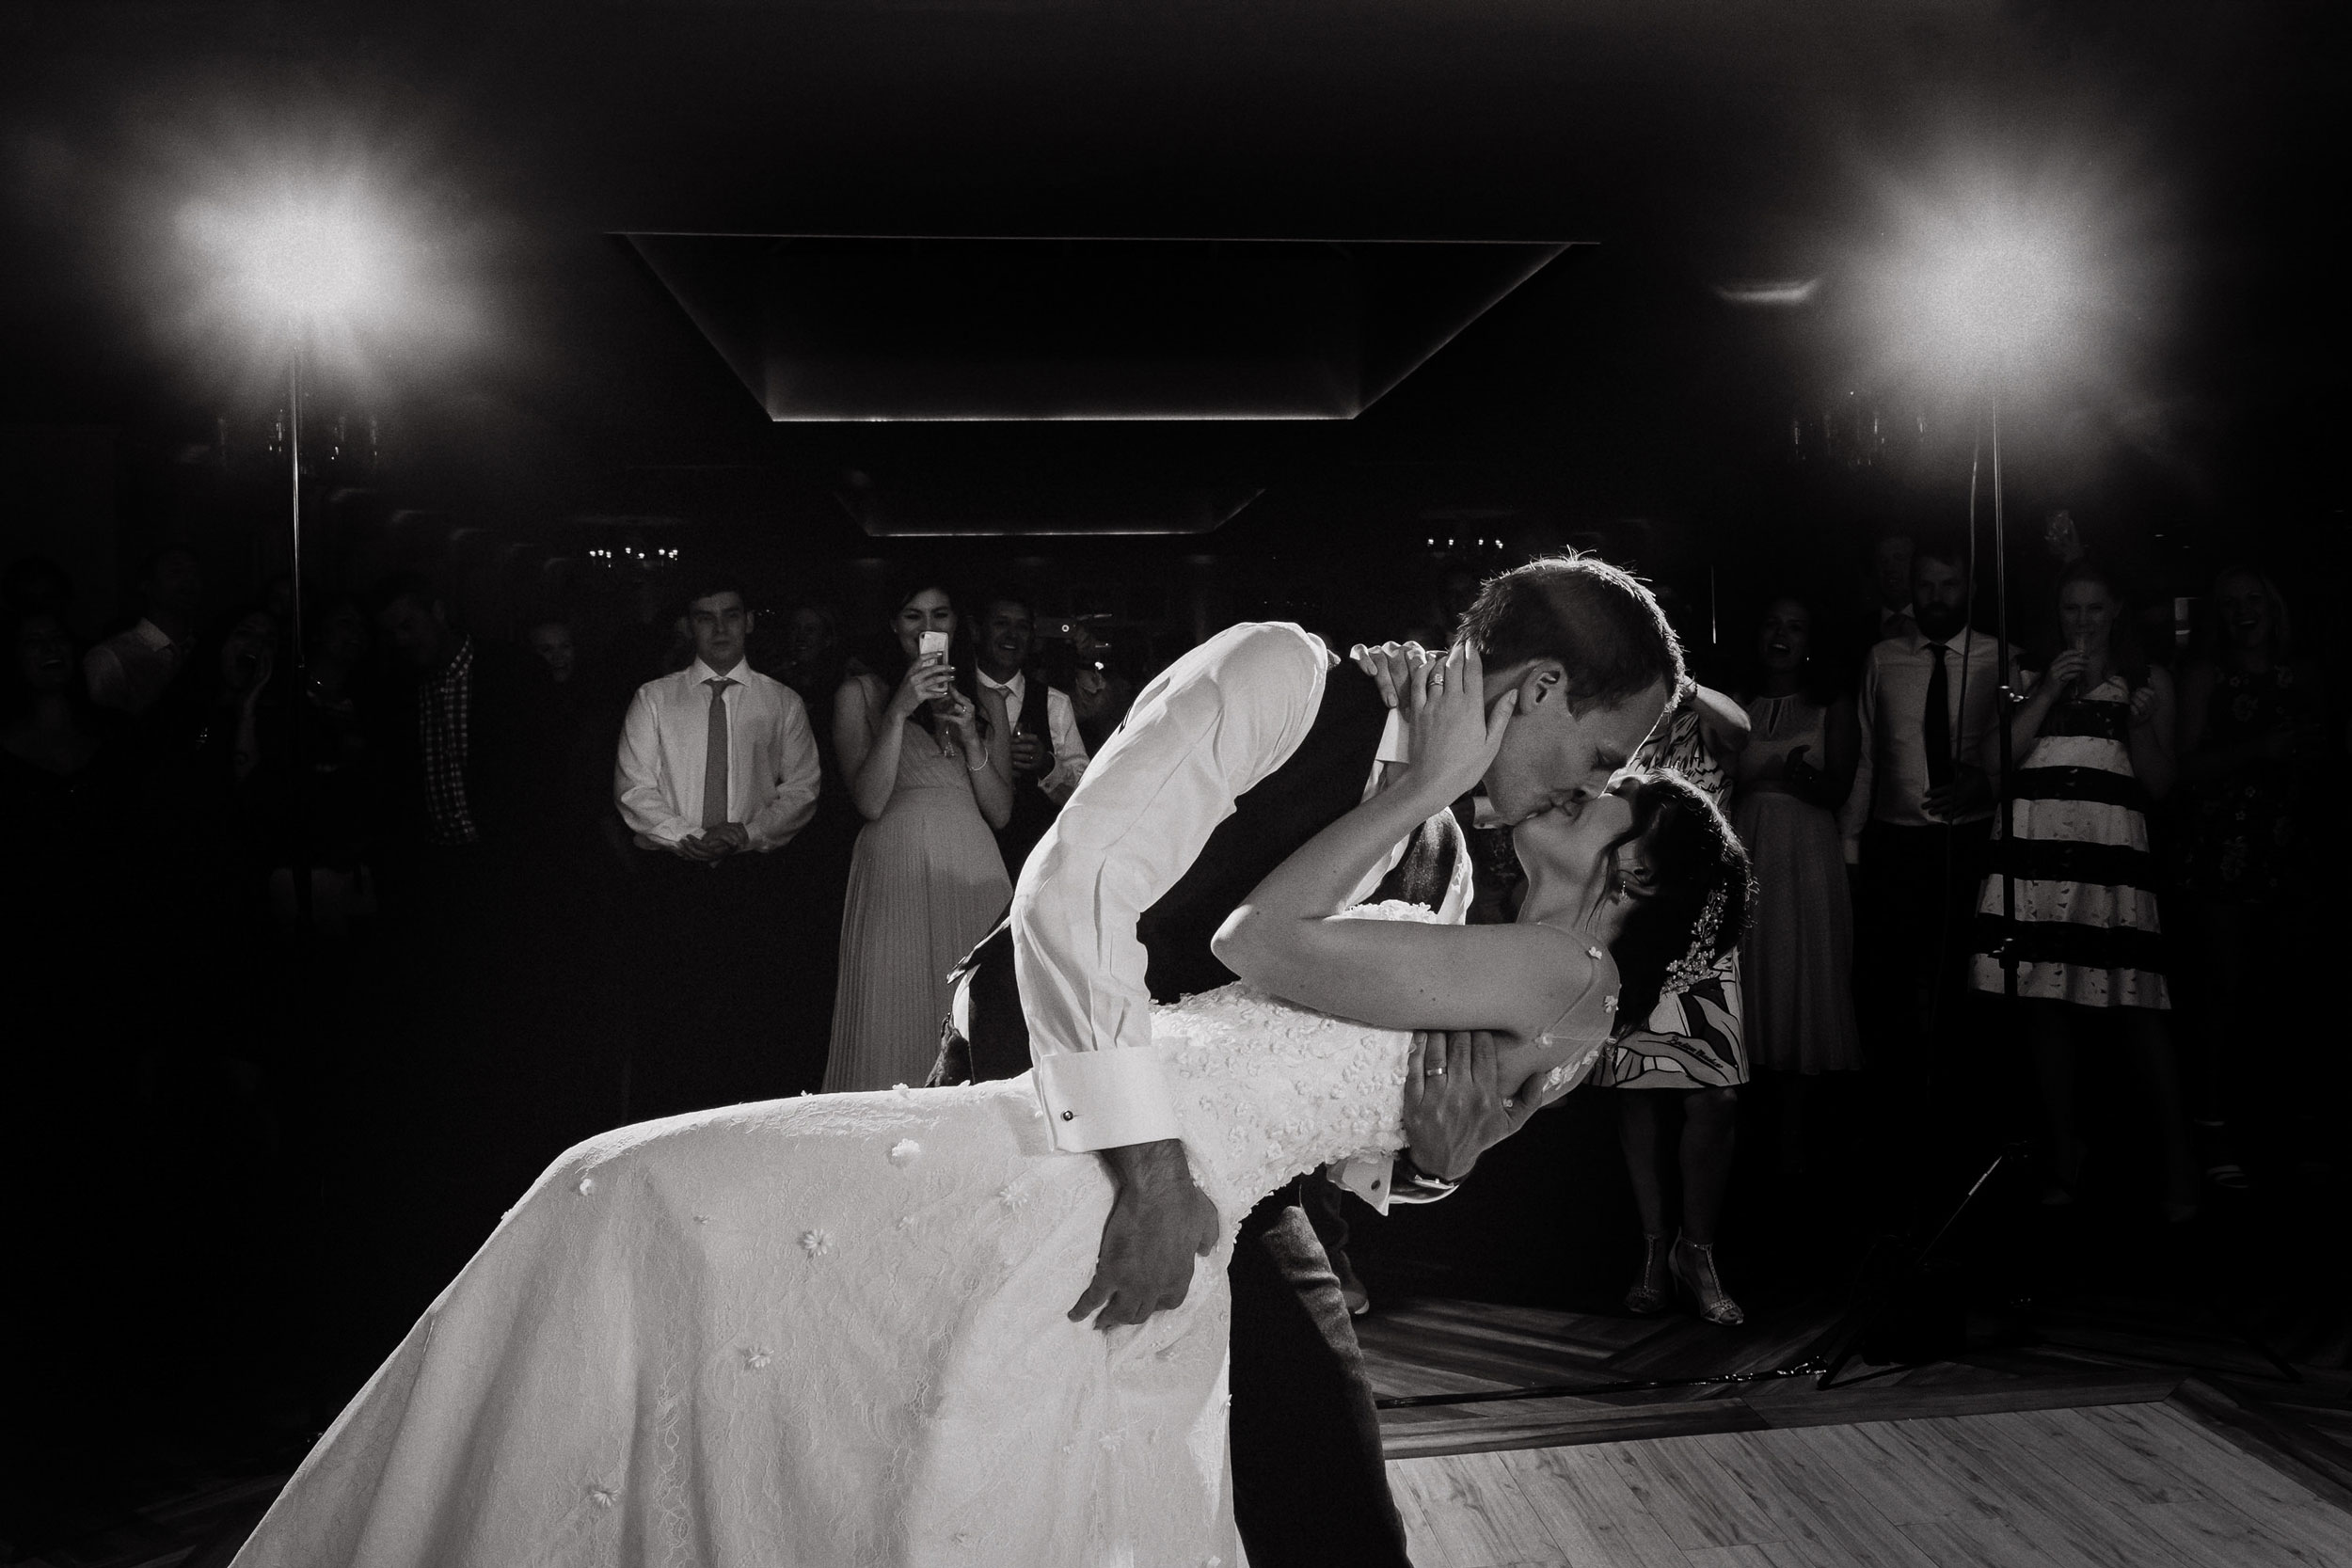 duncan-mein-photography-wedding-photographer-bristol-portfolio-128